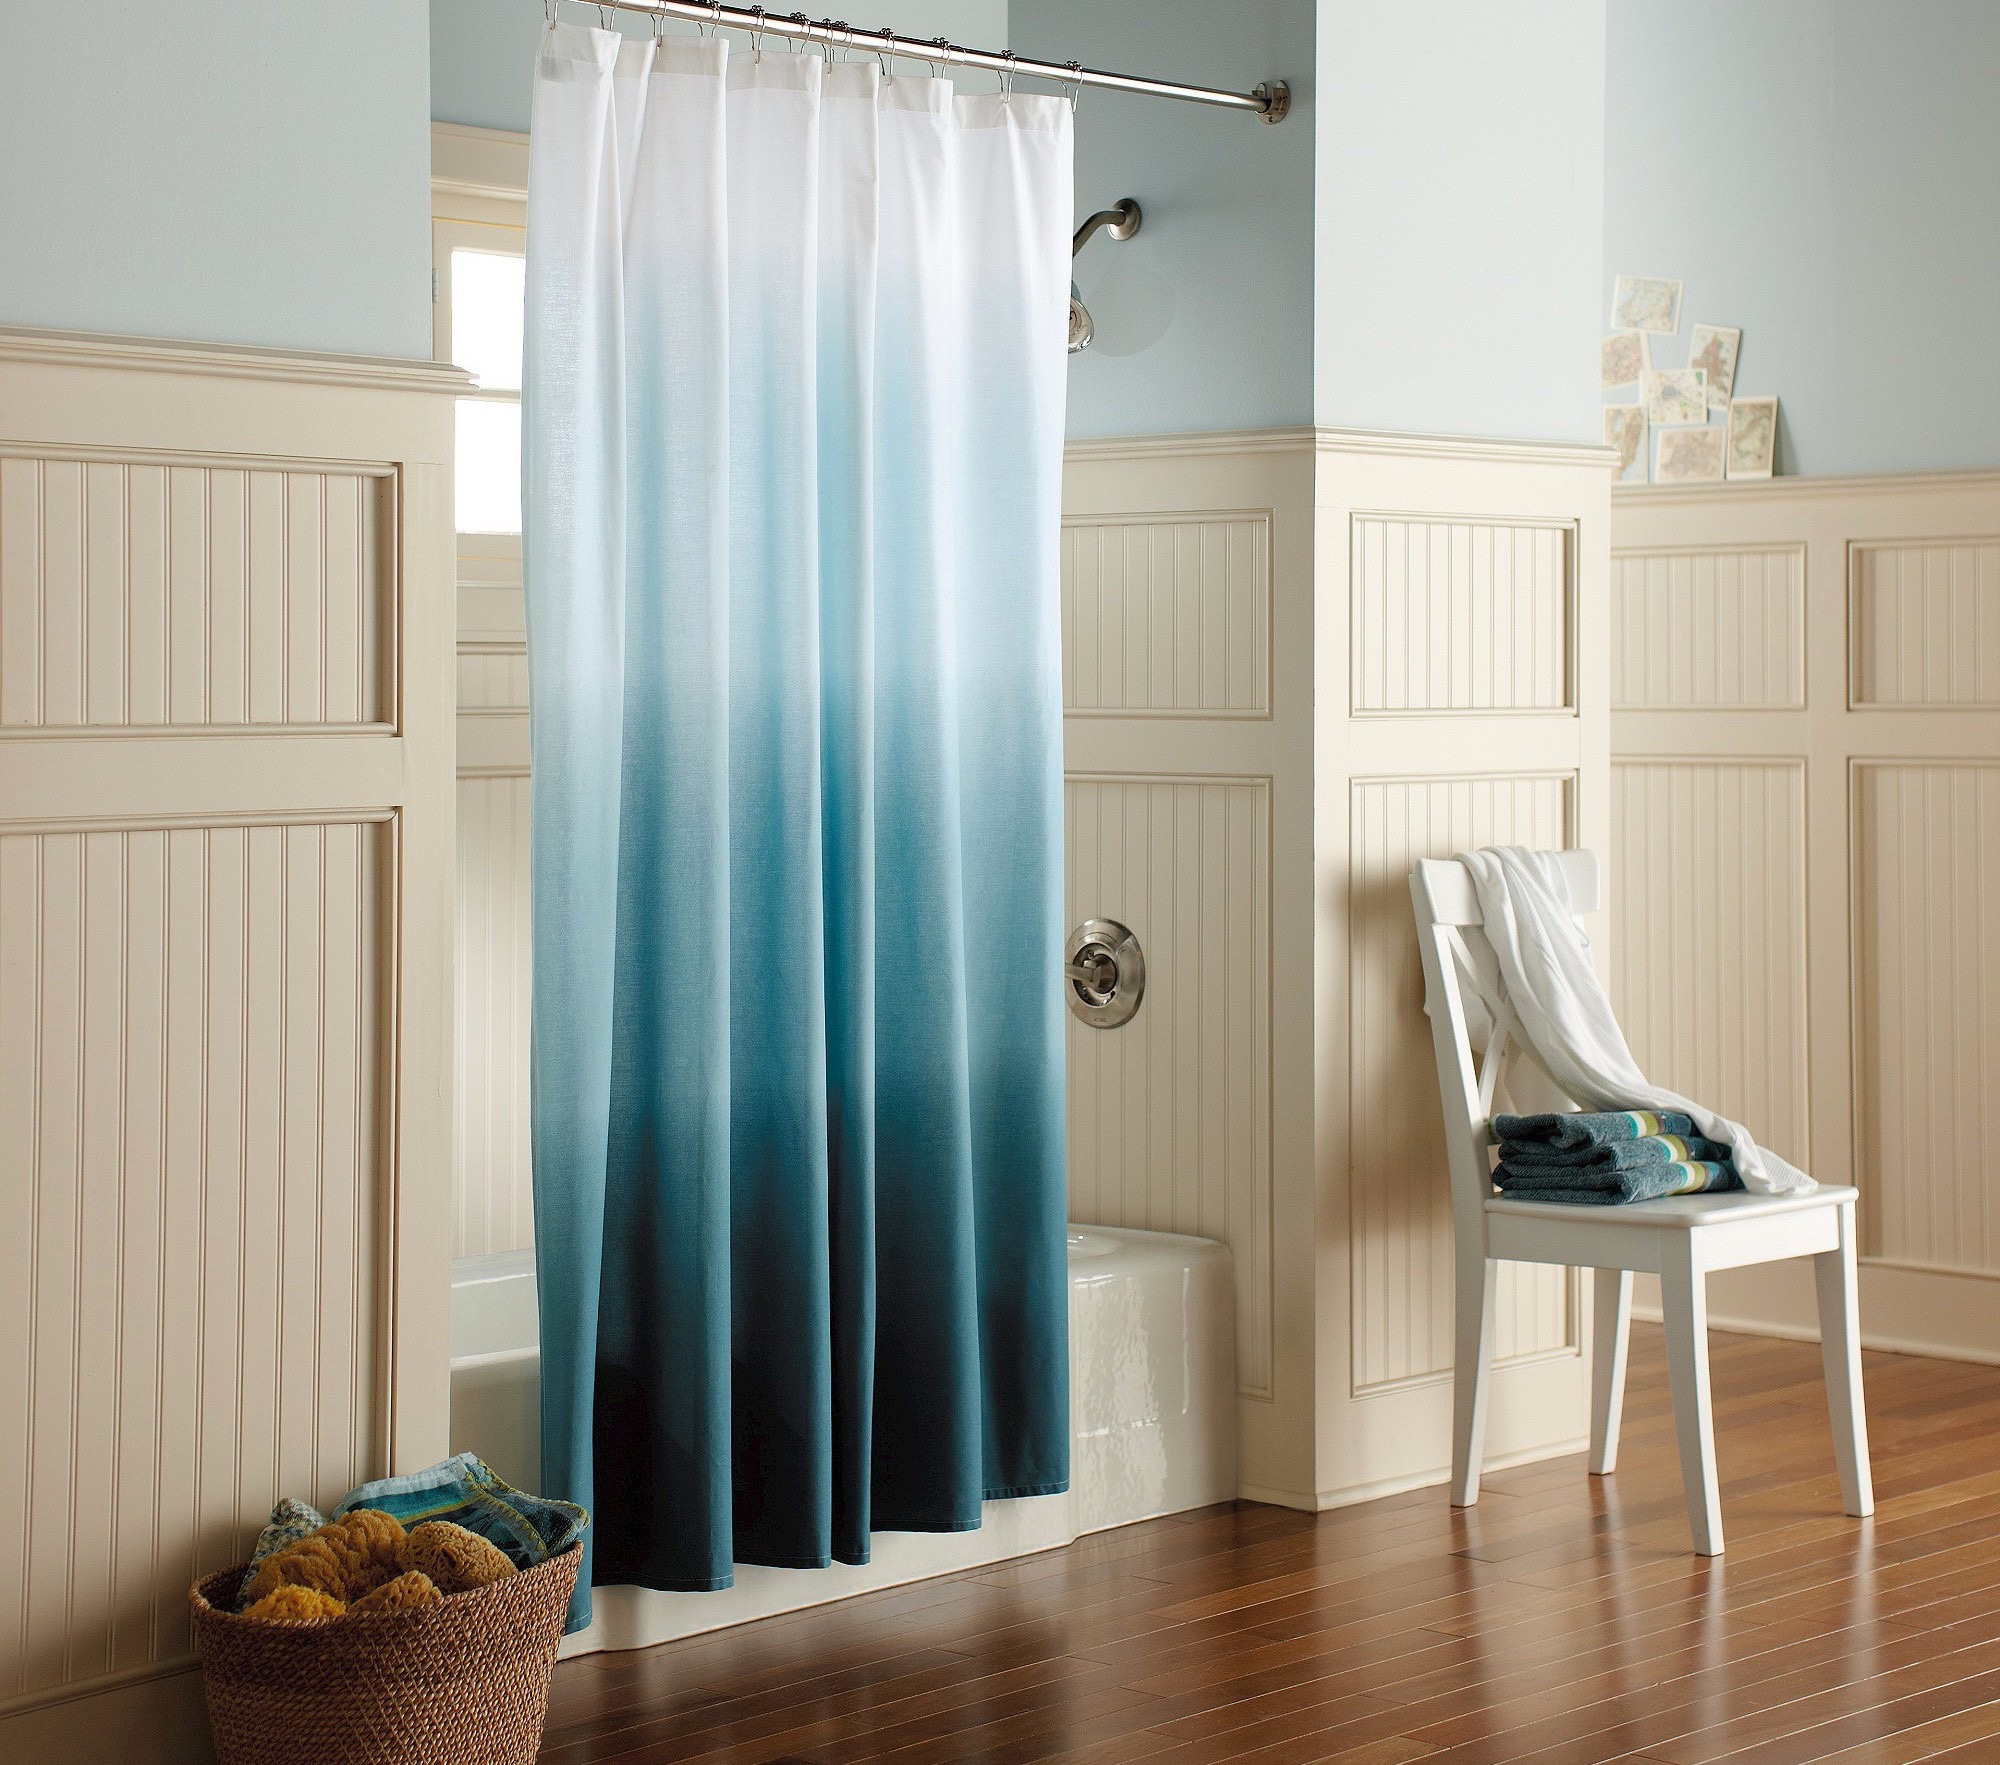 Ocean Blue Shower Curtain In Modern Design (View 14 of 15)